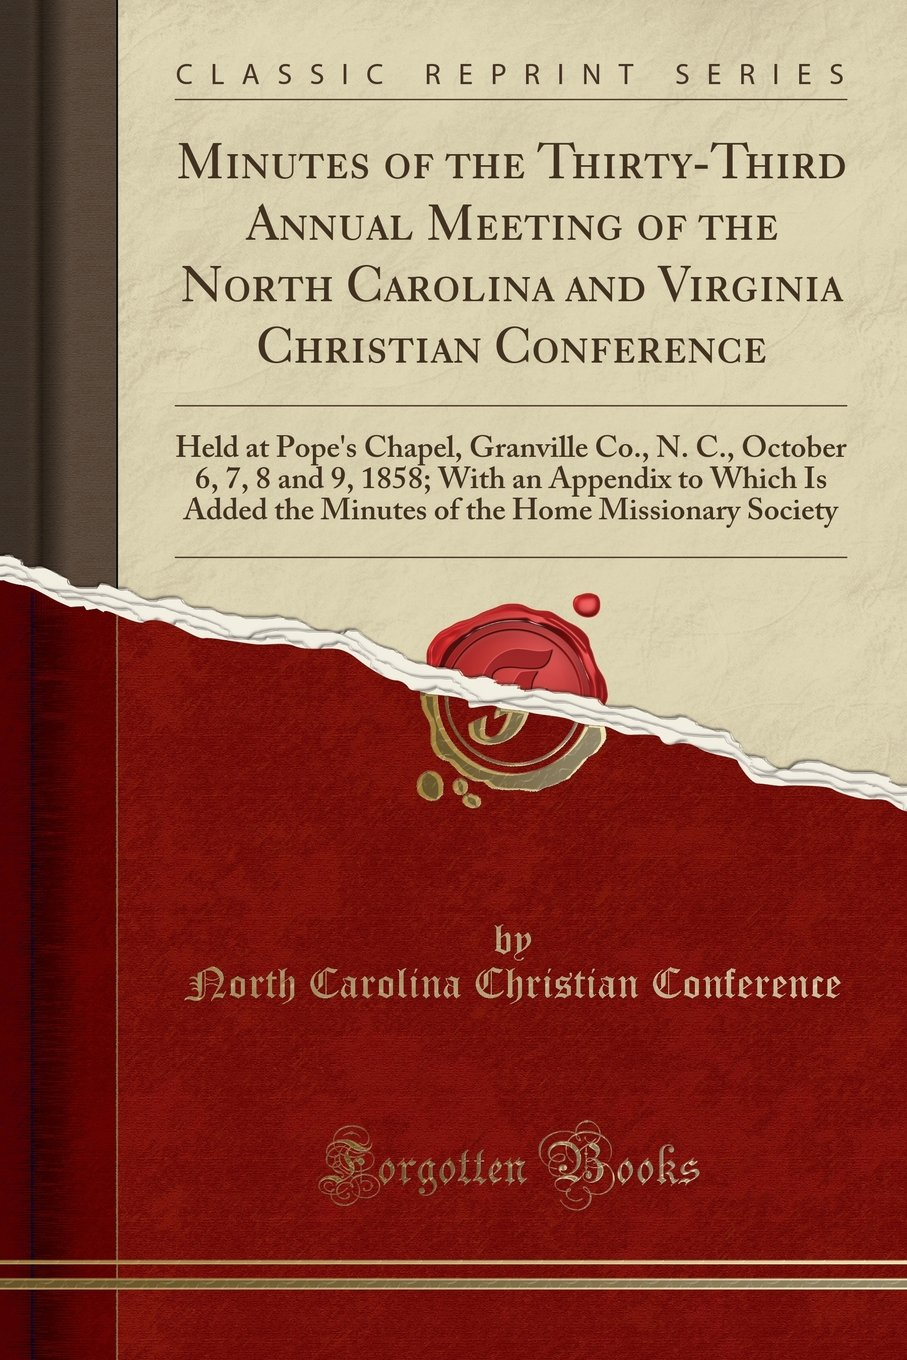 Minutes of the Thirty-Third Annual Meeting of the North Carolina and Virginia Christian Conference: Held at Pope's Chapel, Granville Co., N. C., ... the Minutes of the Home Missionary Society pdf epub